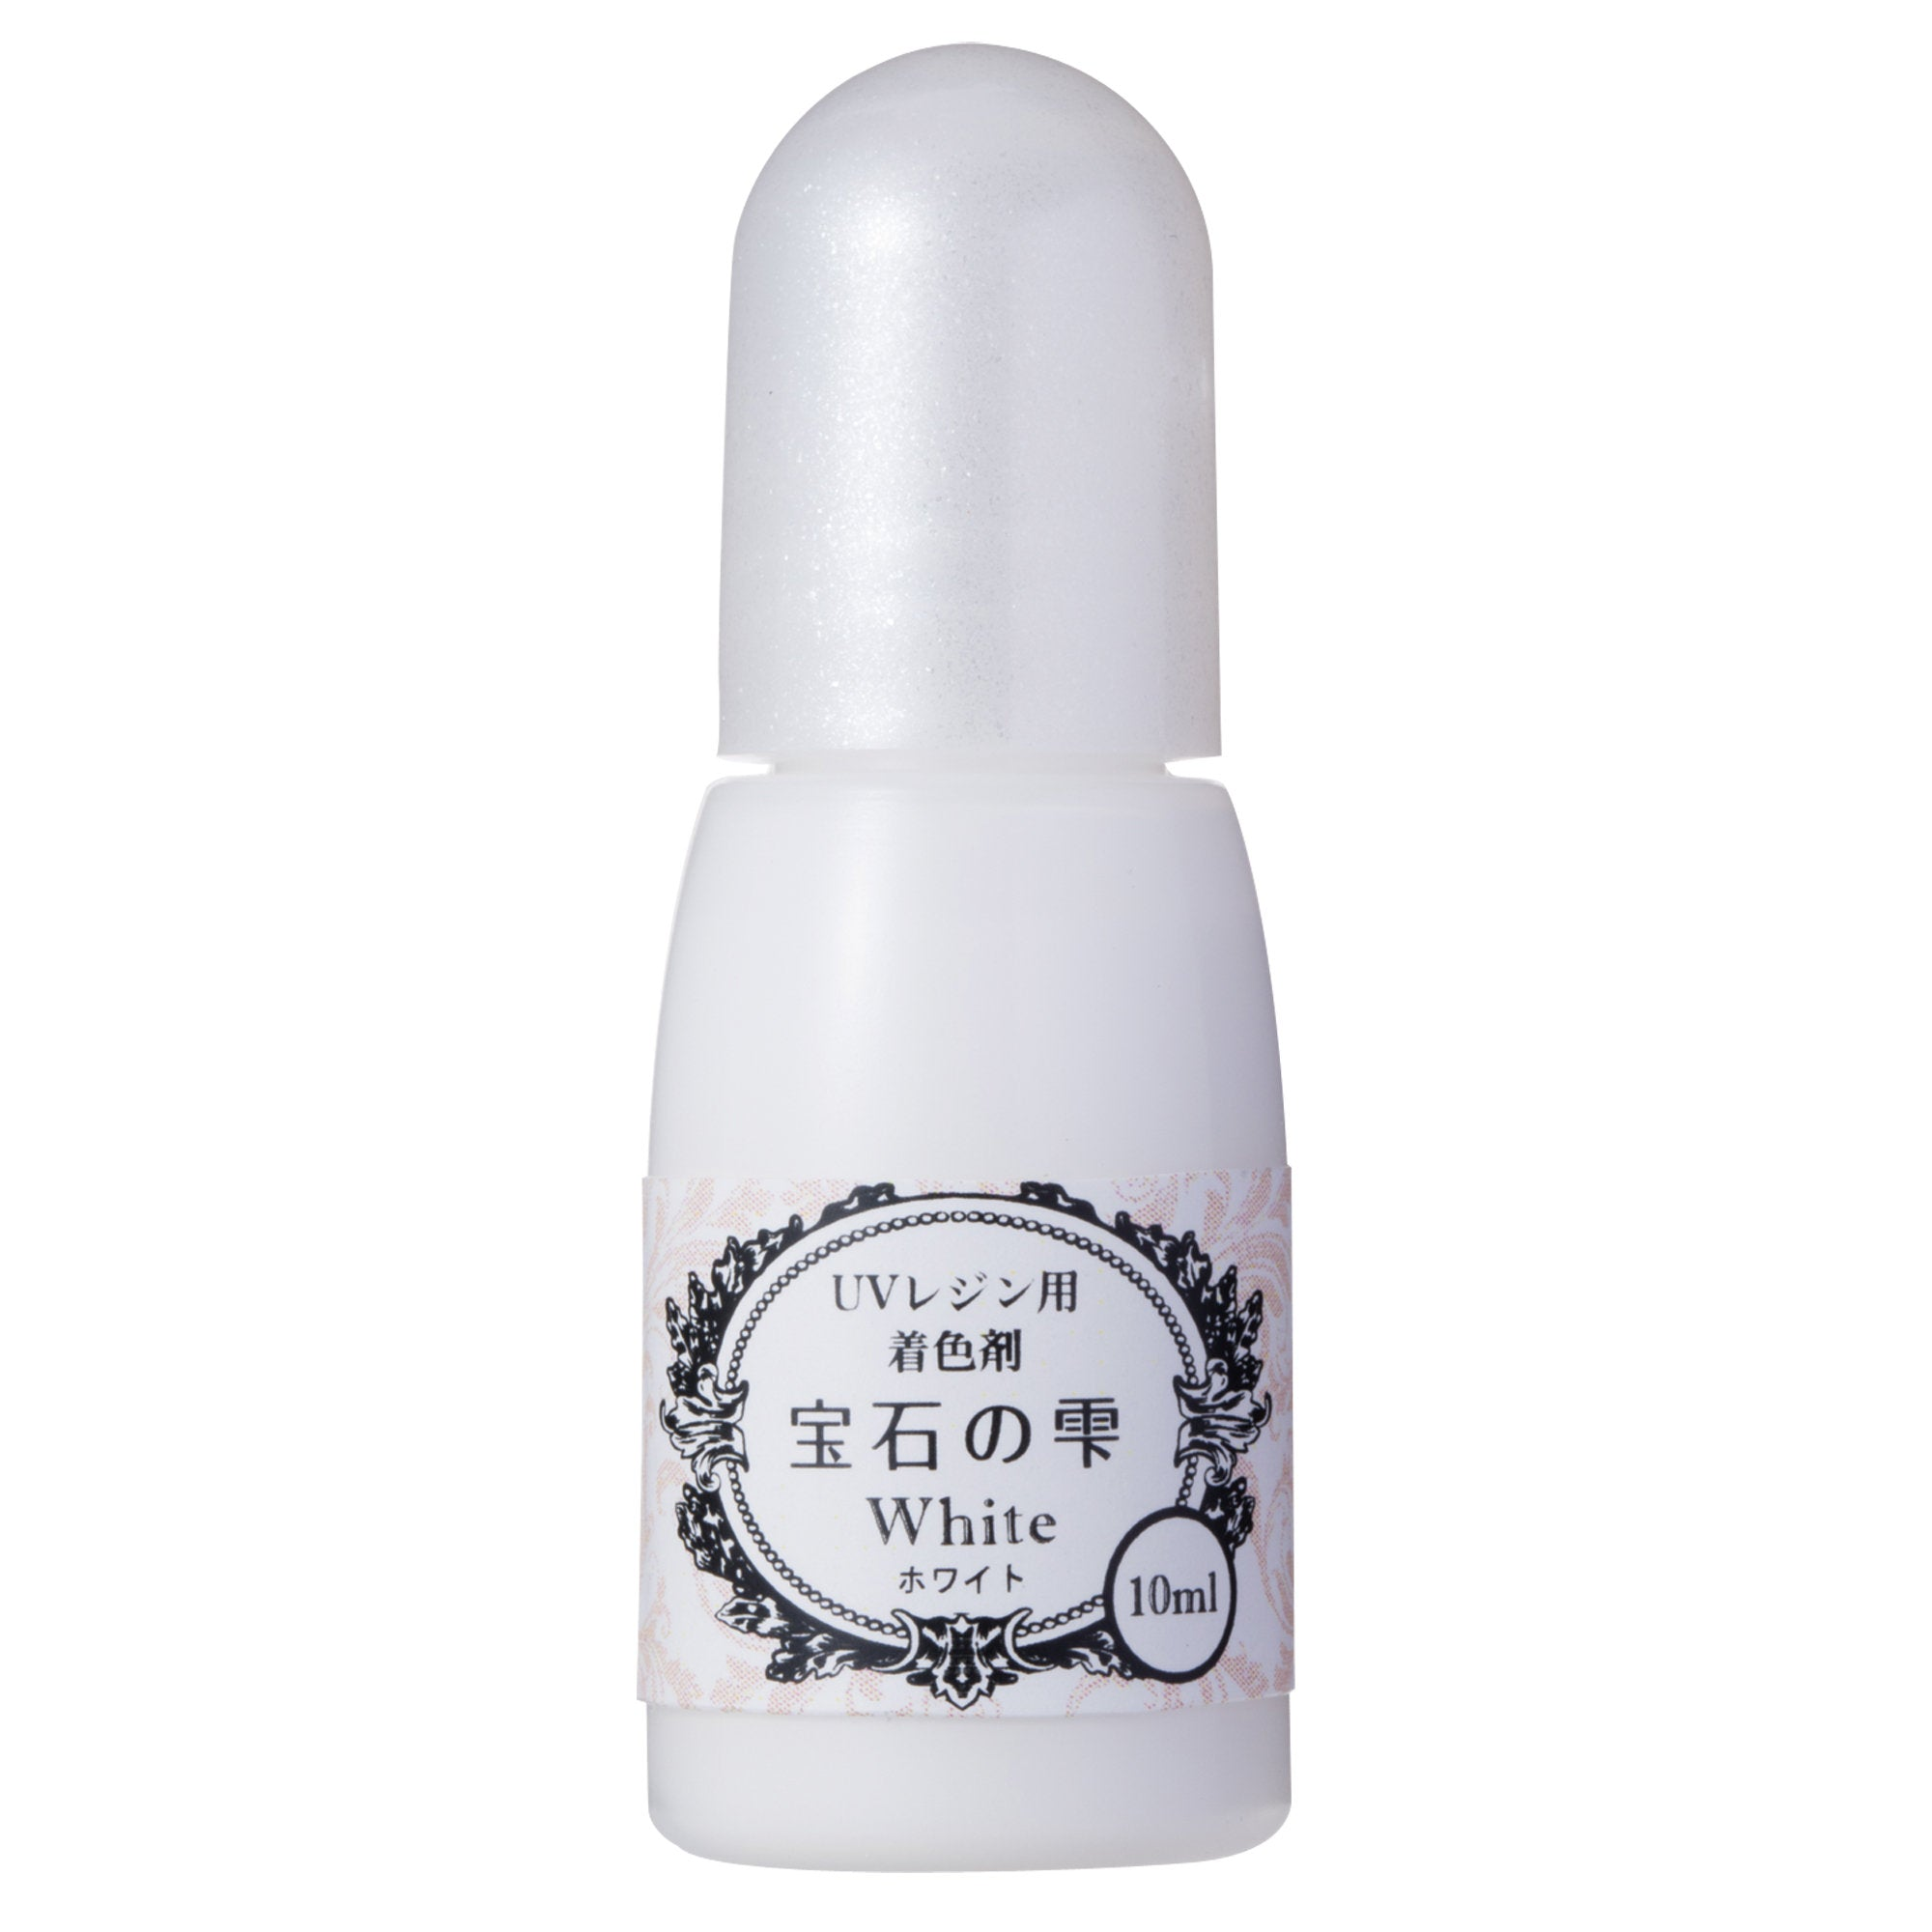 Padico Jewel White Pigment for UV Resin